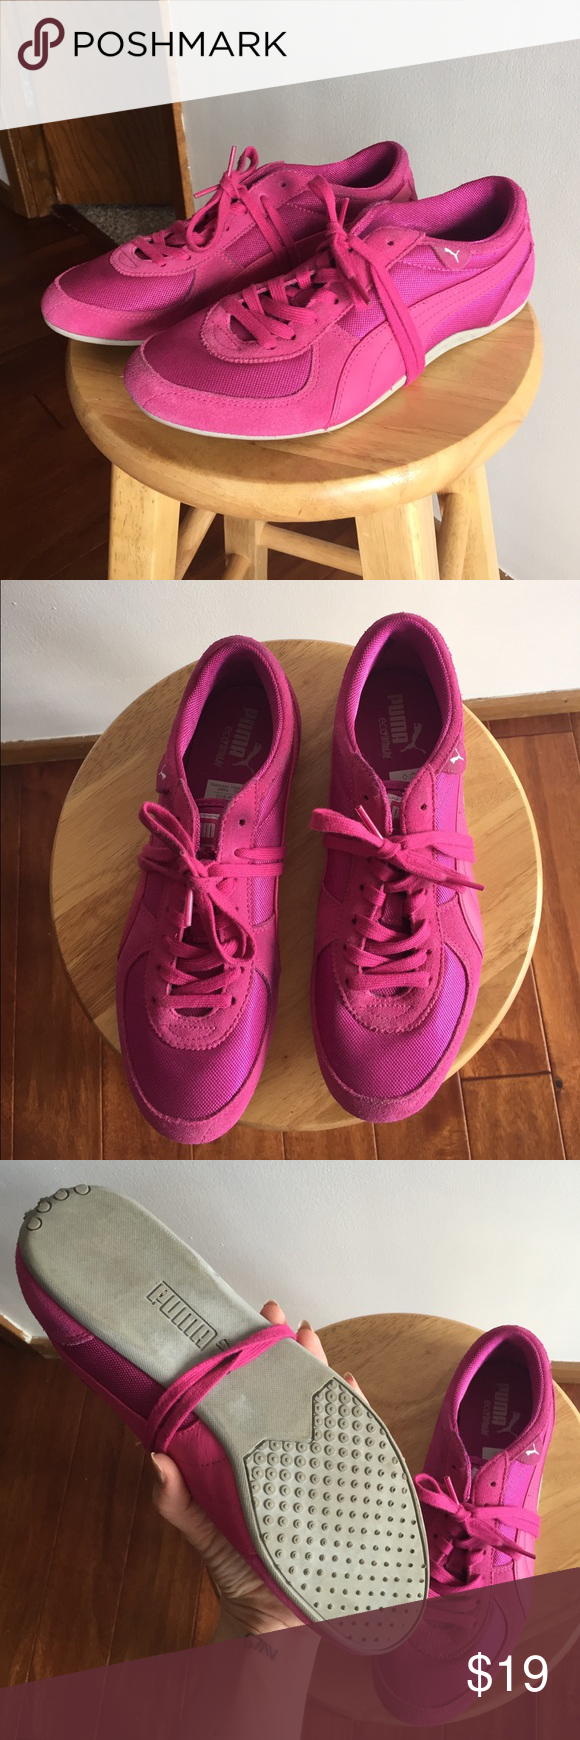 Puma running shoes These pink Puma running shoes are lightly worn and in great condition! Make me an offer  Puma Shoes Sneakers